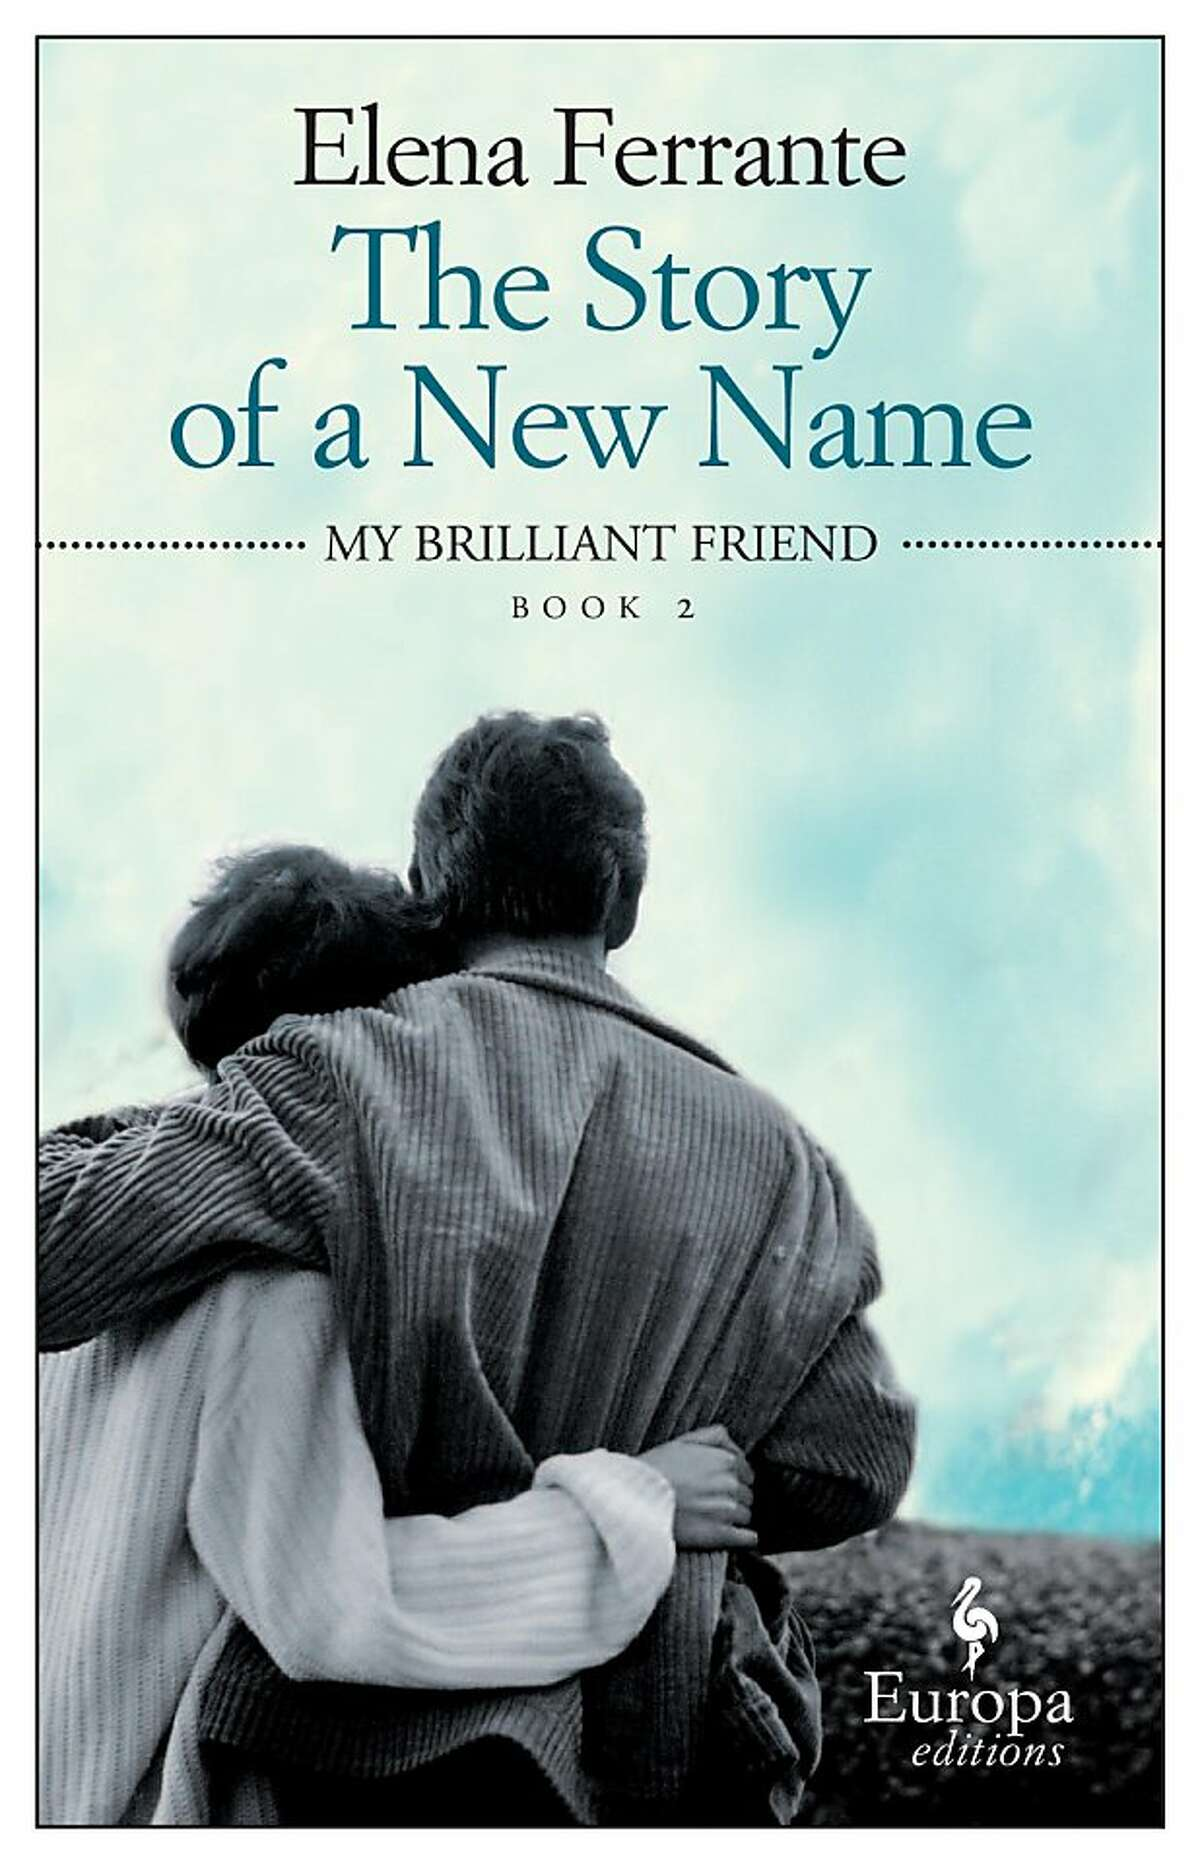 The Story of a New Name, by Elena Ferrante